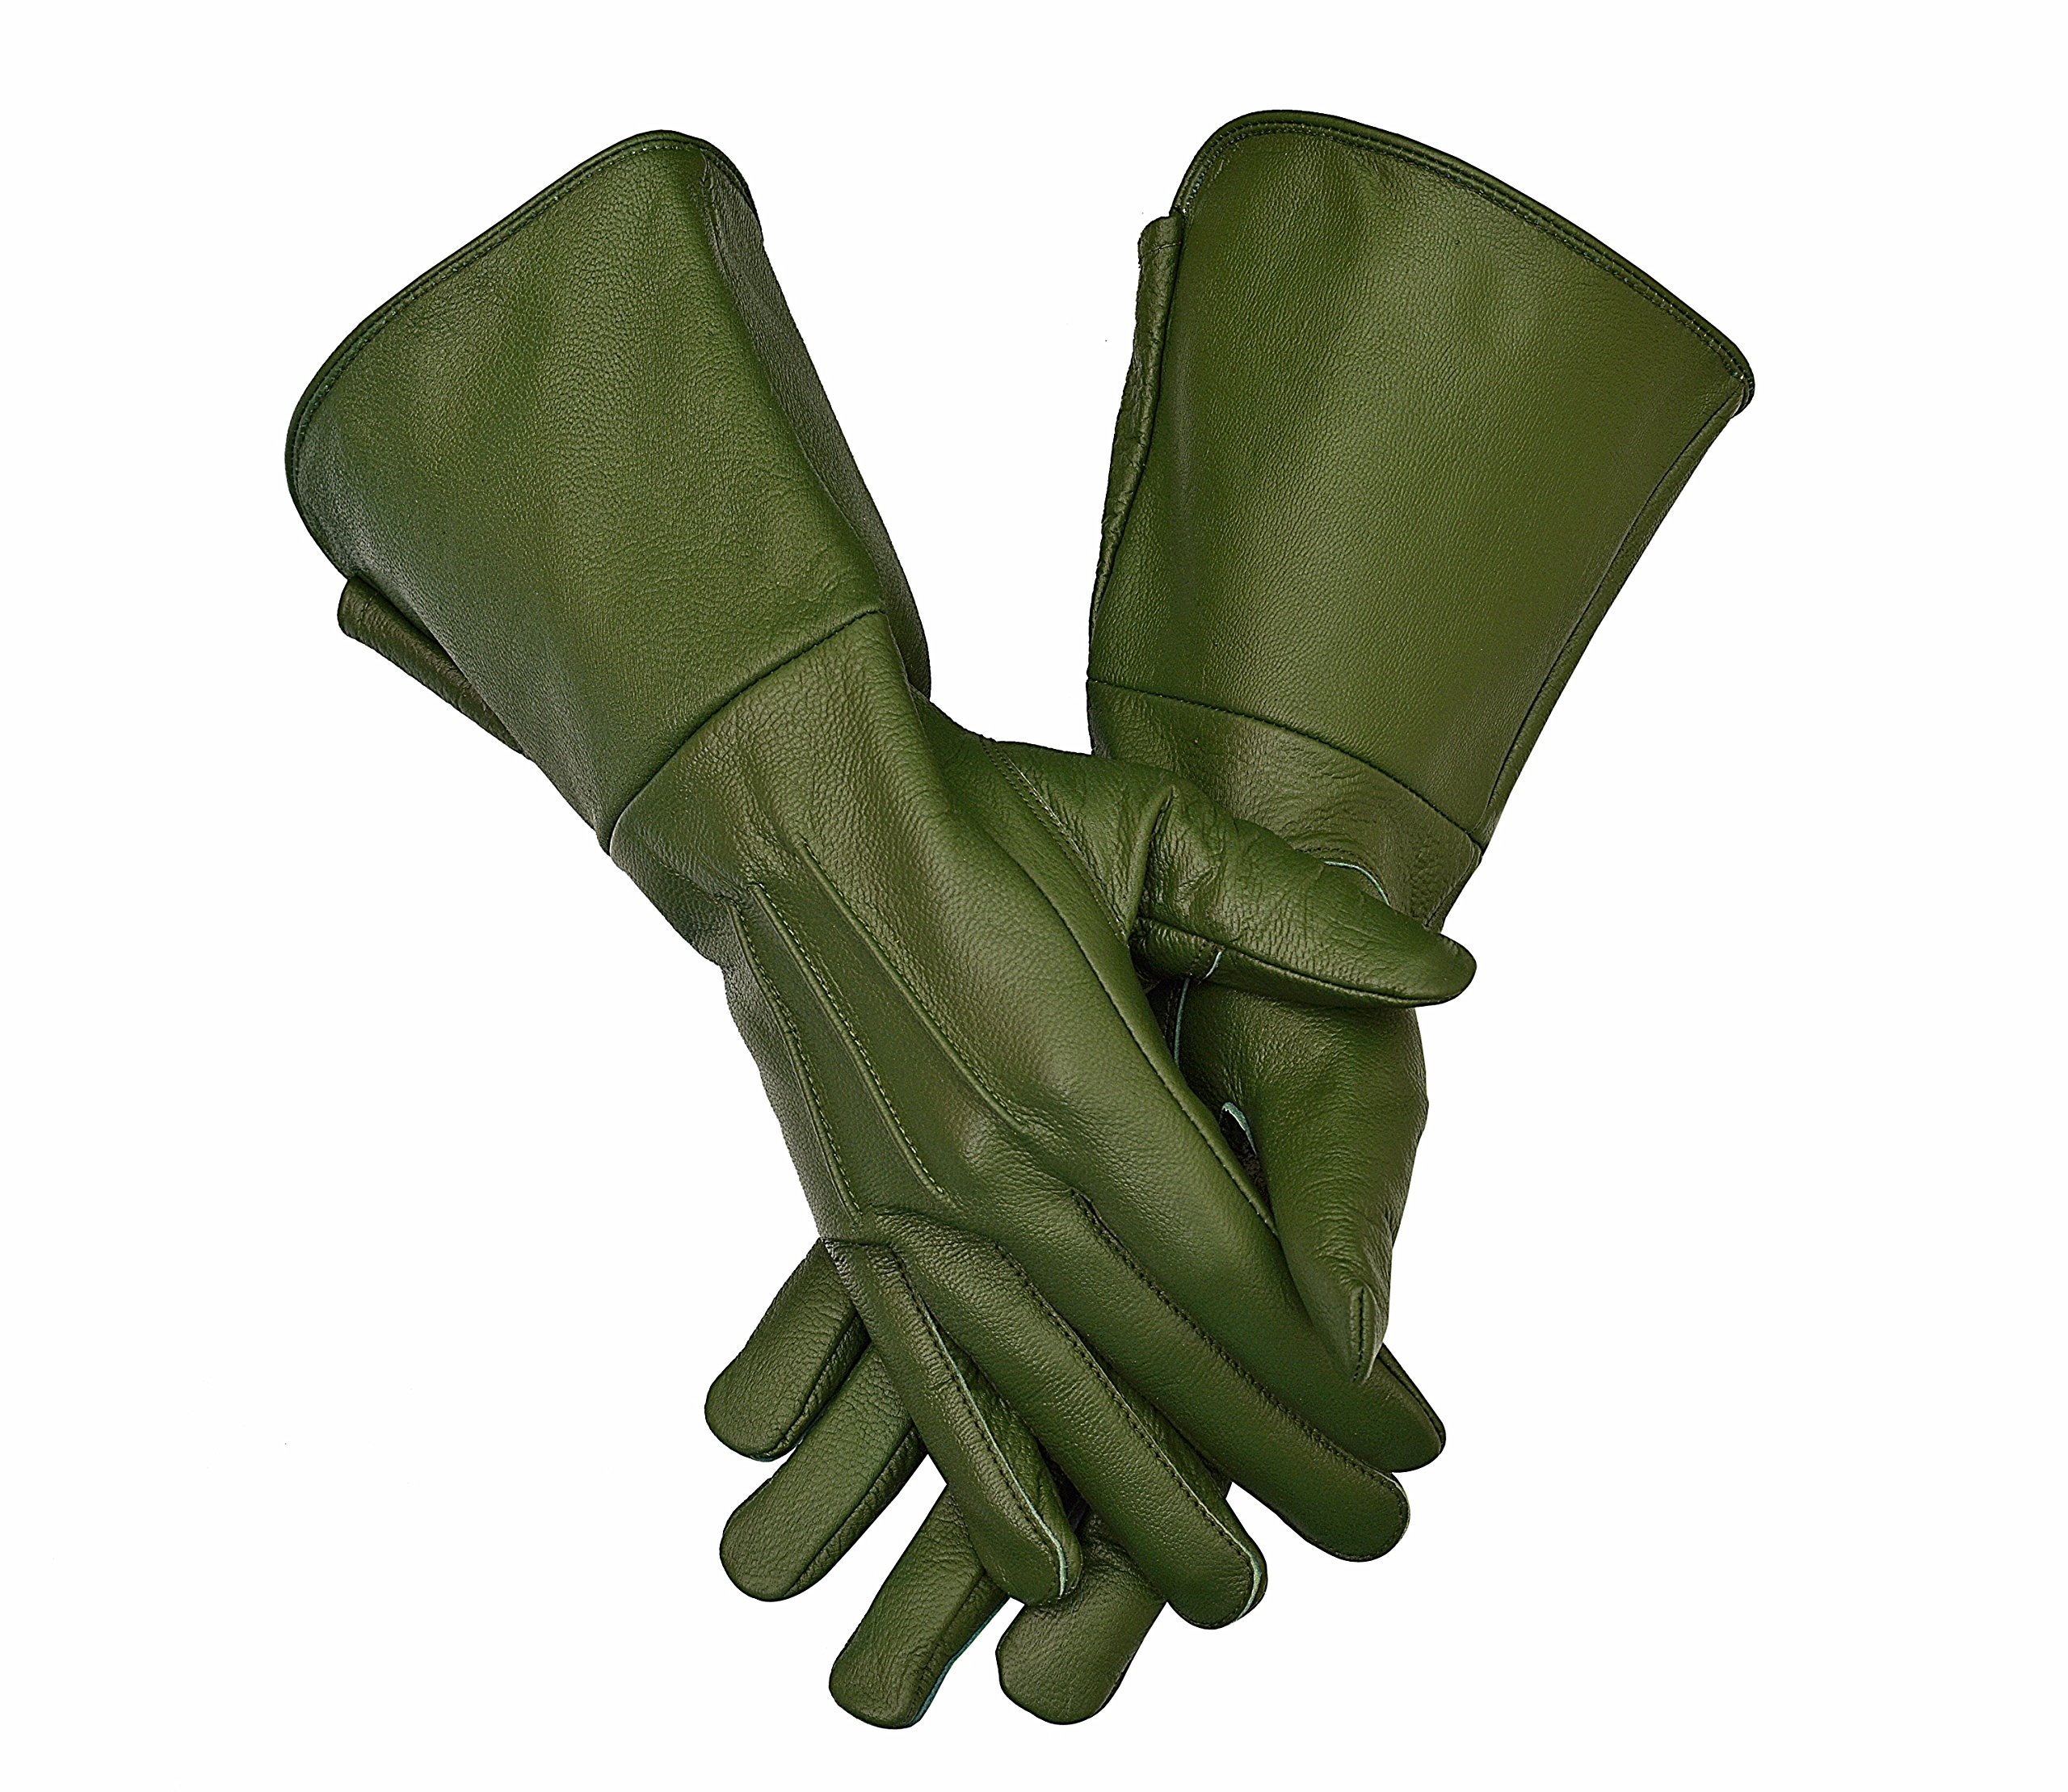 Medieval Gauntlet Leather Cosplay Gloves Long arm Cuff (X-Large, Green)